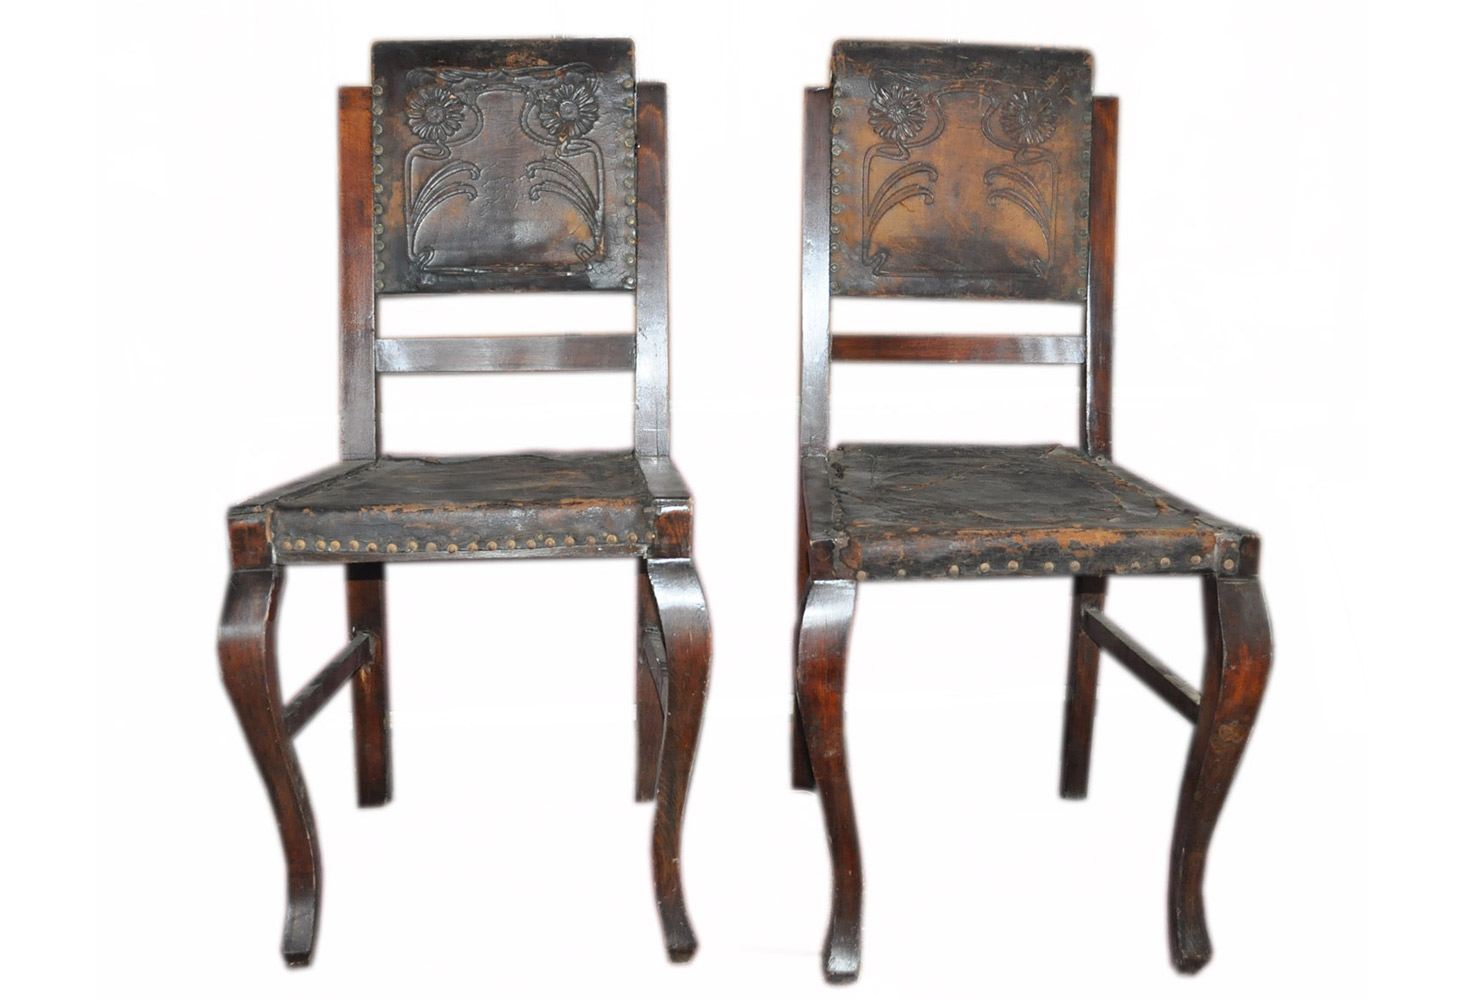 Antique Embossed Leather Dining Chairs Pair Omero Home : antique embossed leather dining chairs pair from www.omerohome.com size 1471 x 1000 jpeg 172kB